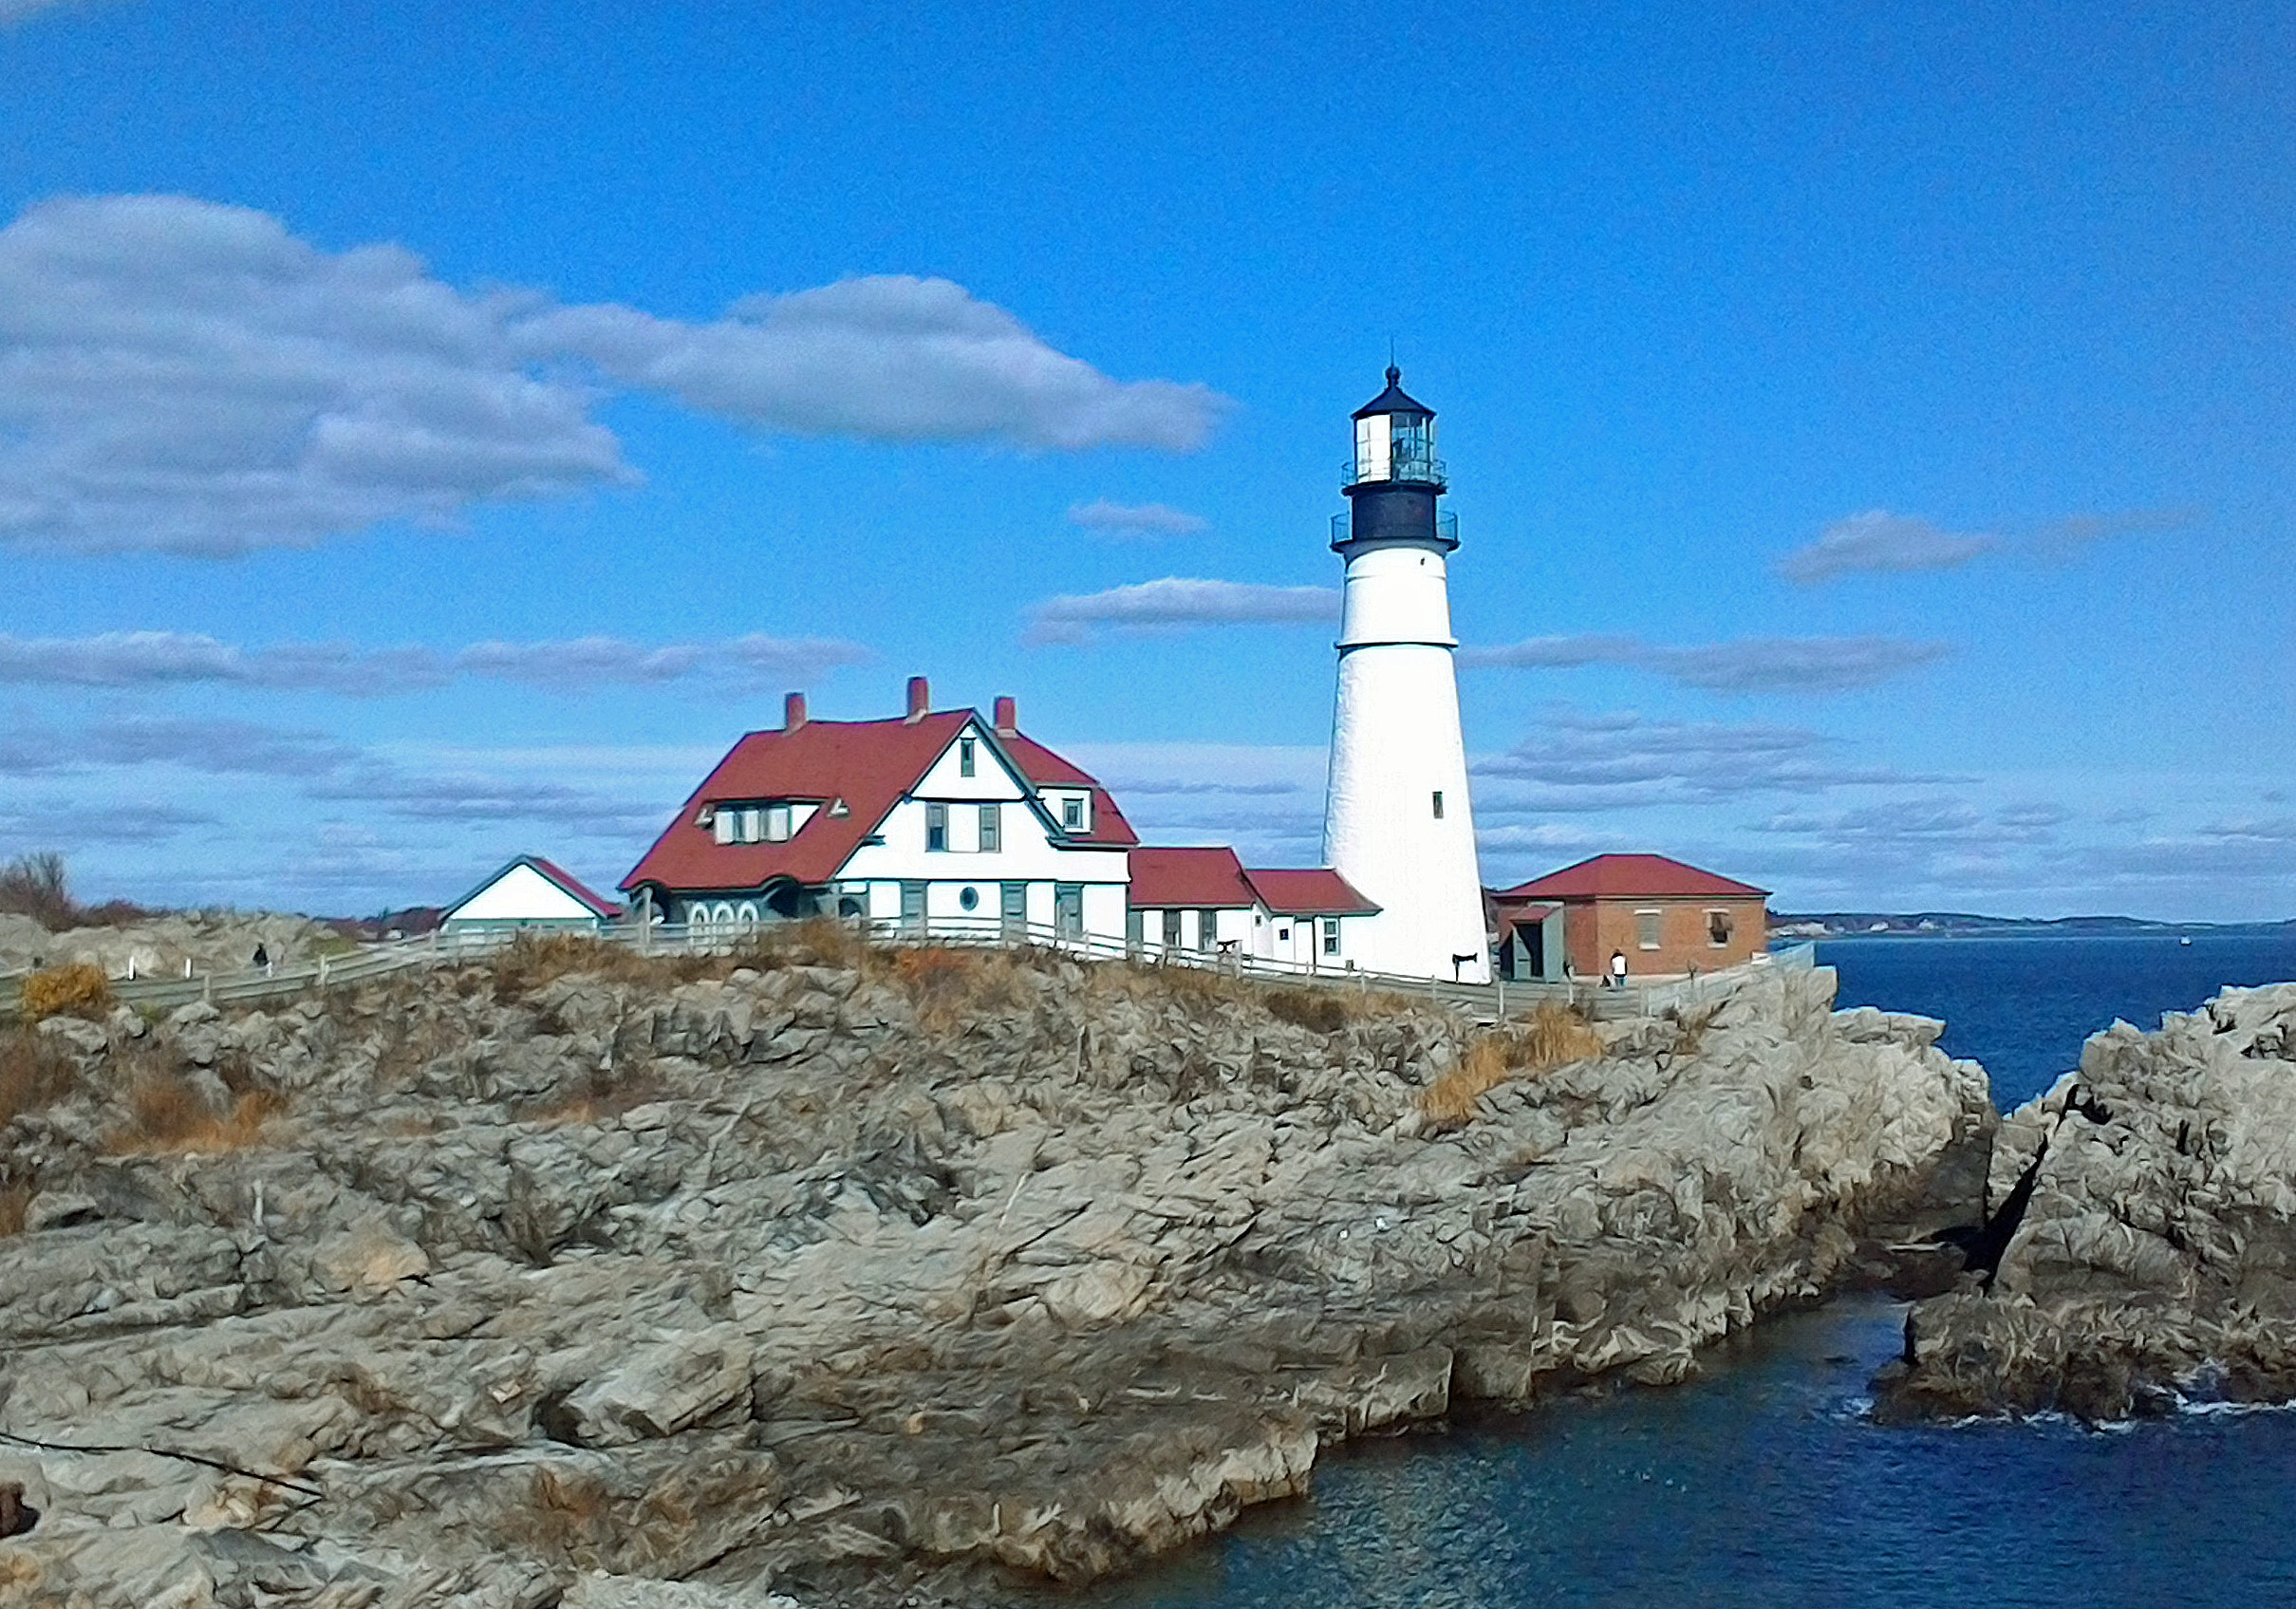 Free Stock Photo Of Lighthouse On The Rocks